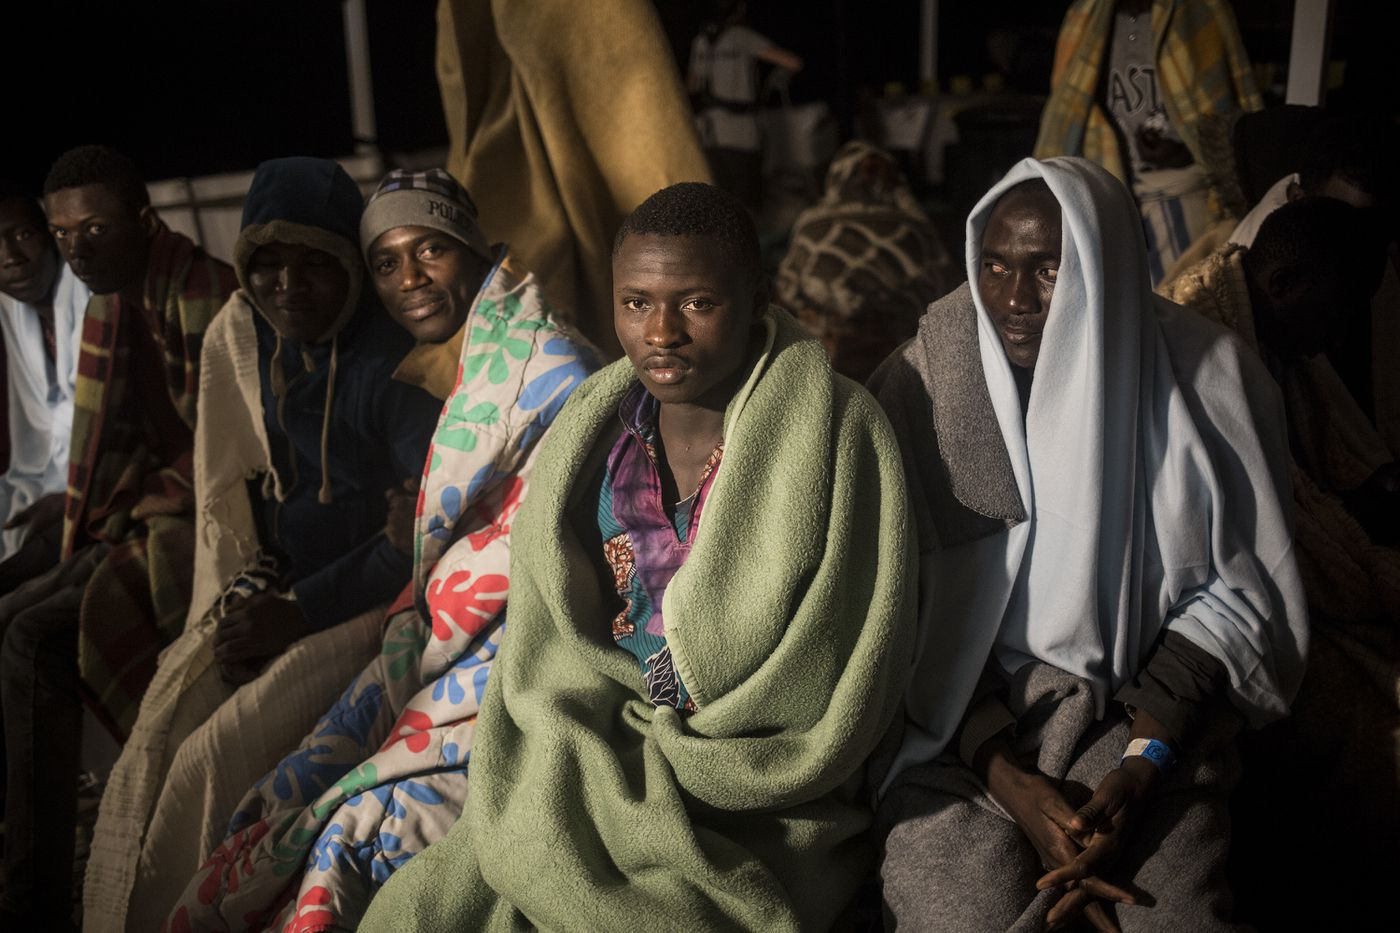 Vafin, 16, centre, from Guinea Conarky, sits with other migrants on the deck of Open Arms vessel, after they were rescued by the Spanish NGO Pro Activa Open Arms, about 40 miles (64 kms) from the Spanish coasts, on Thursday, Oct. 11, 2018. The Open Arms is now based at Motril port in order to start operating in the western Mediterranean area. (AP Photo/Javier Fergo)